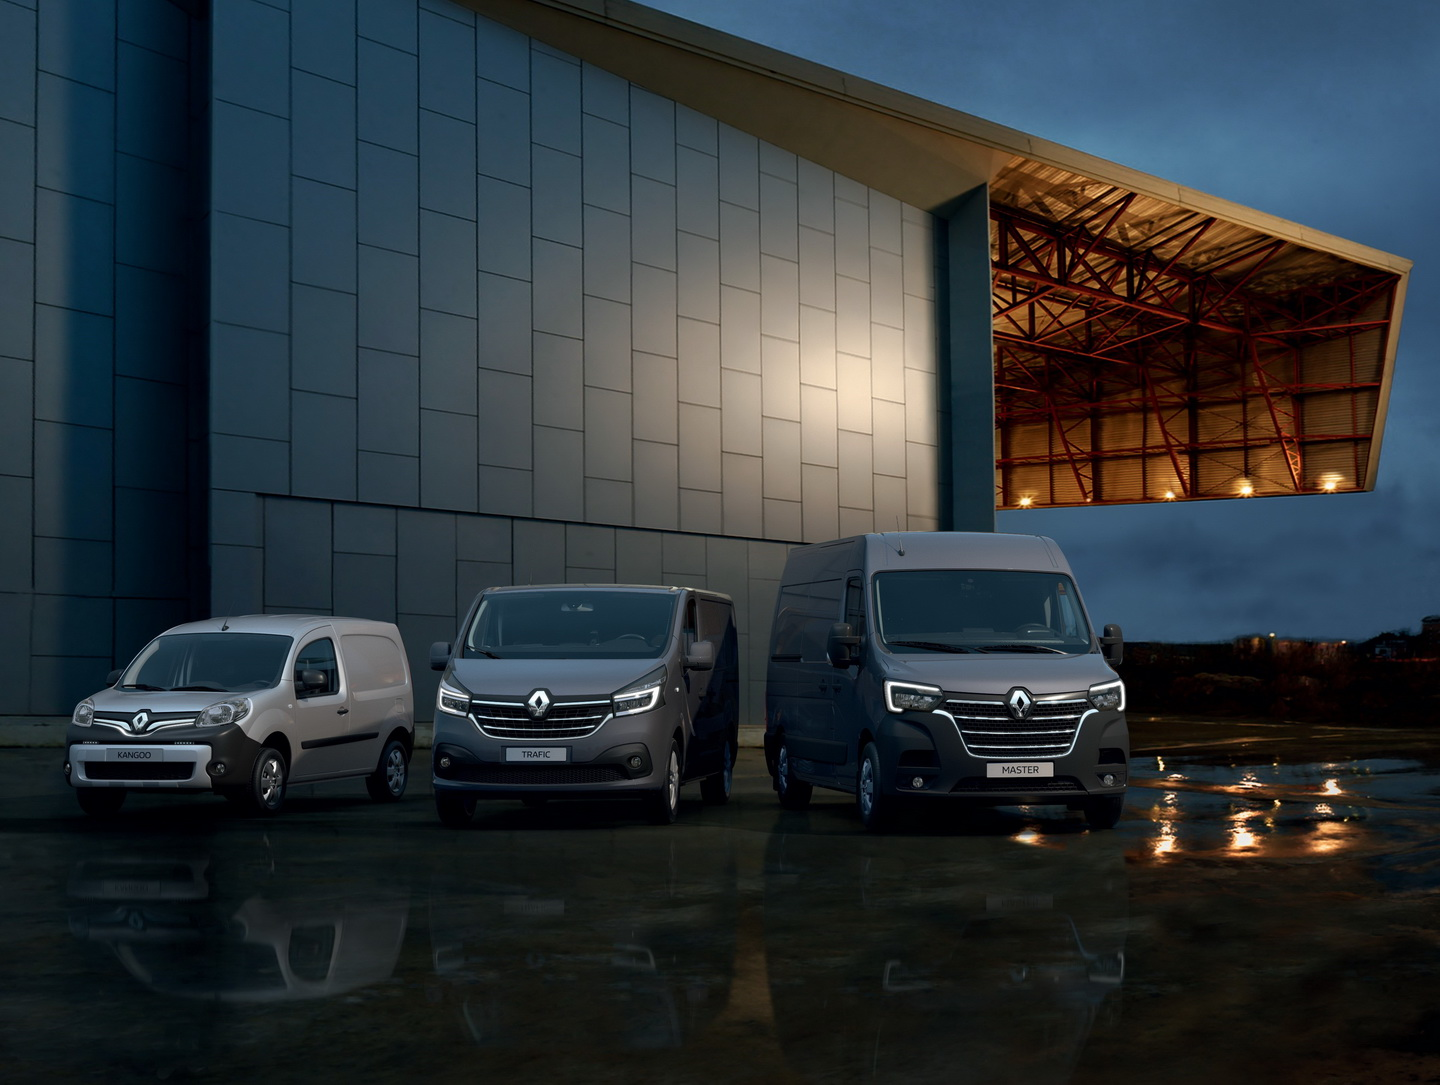 New 2019 Renault Trafic facelift 14